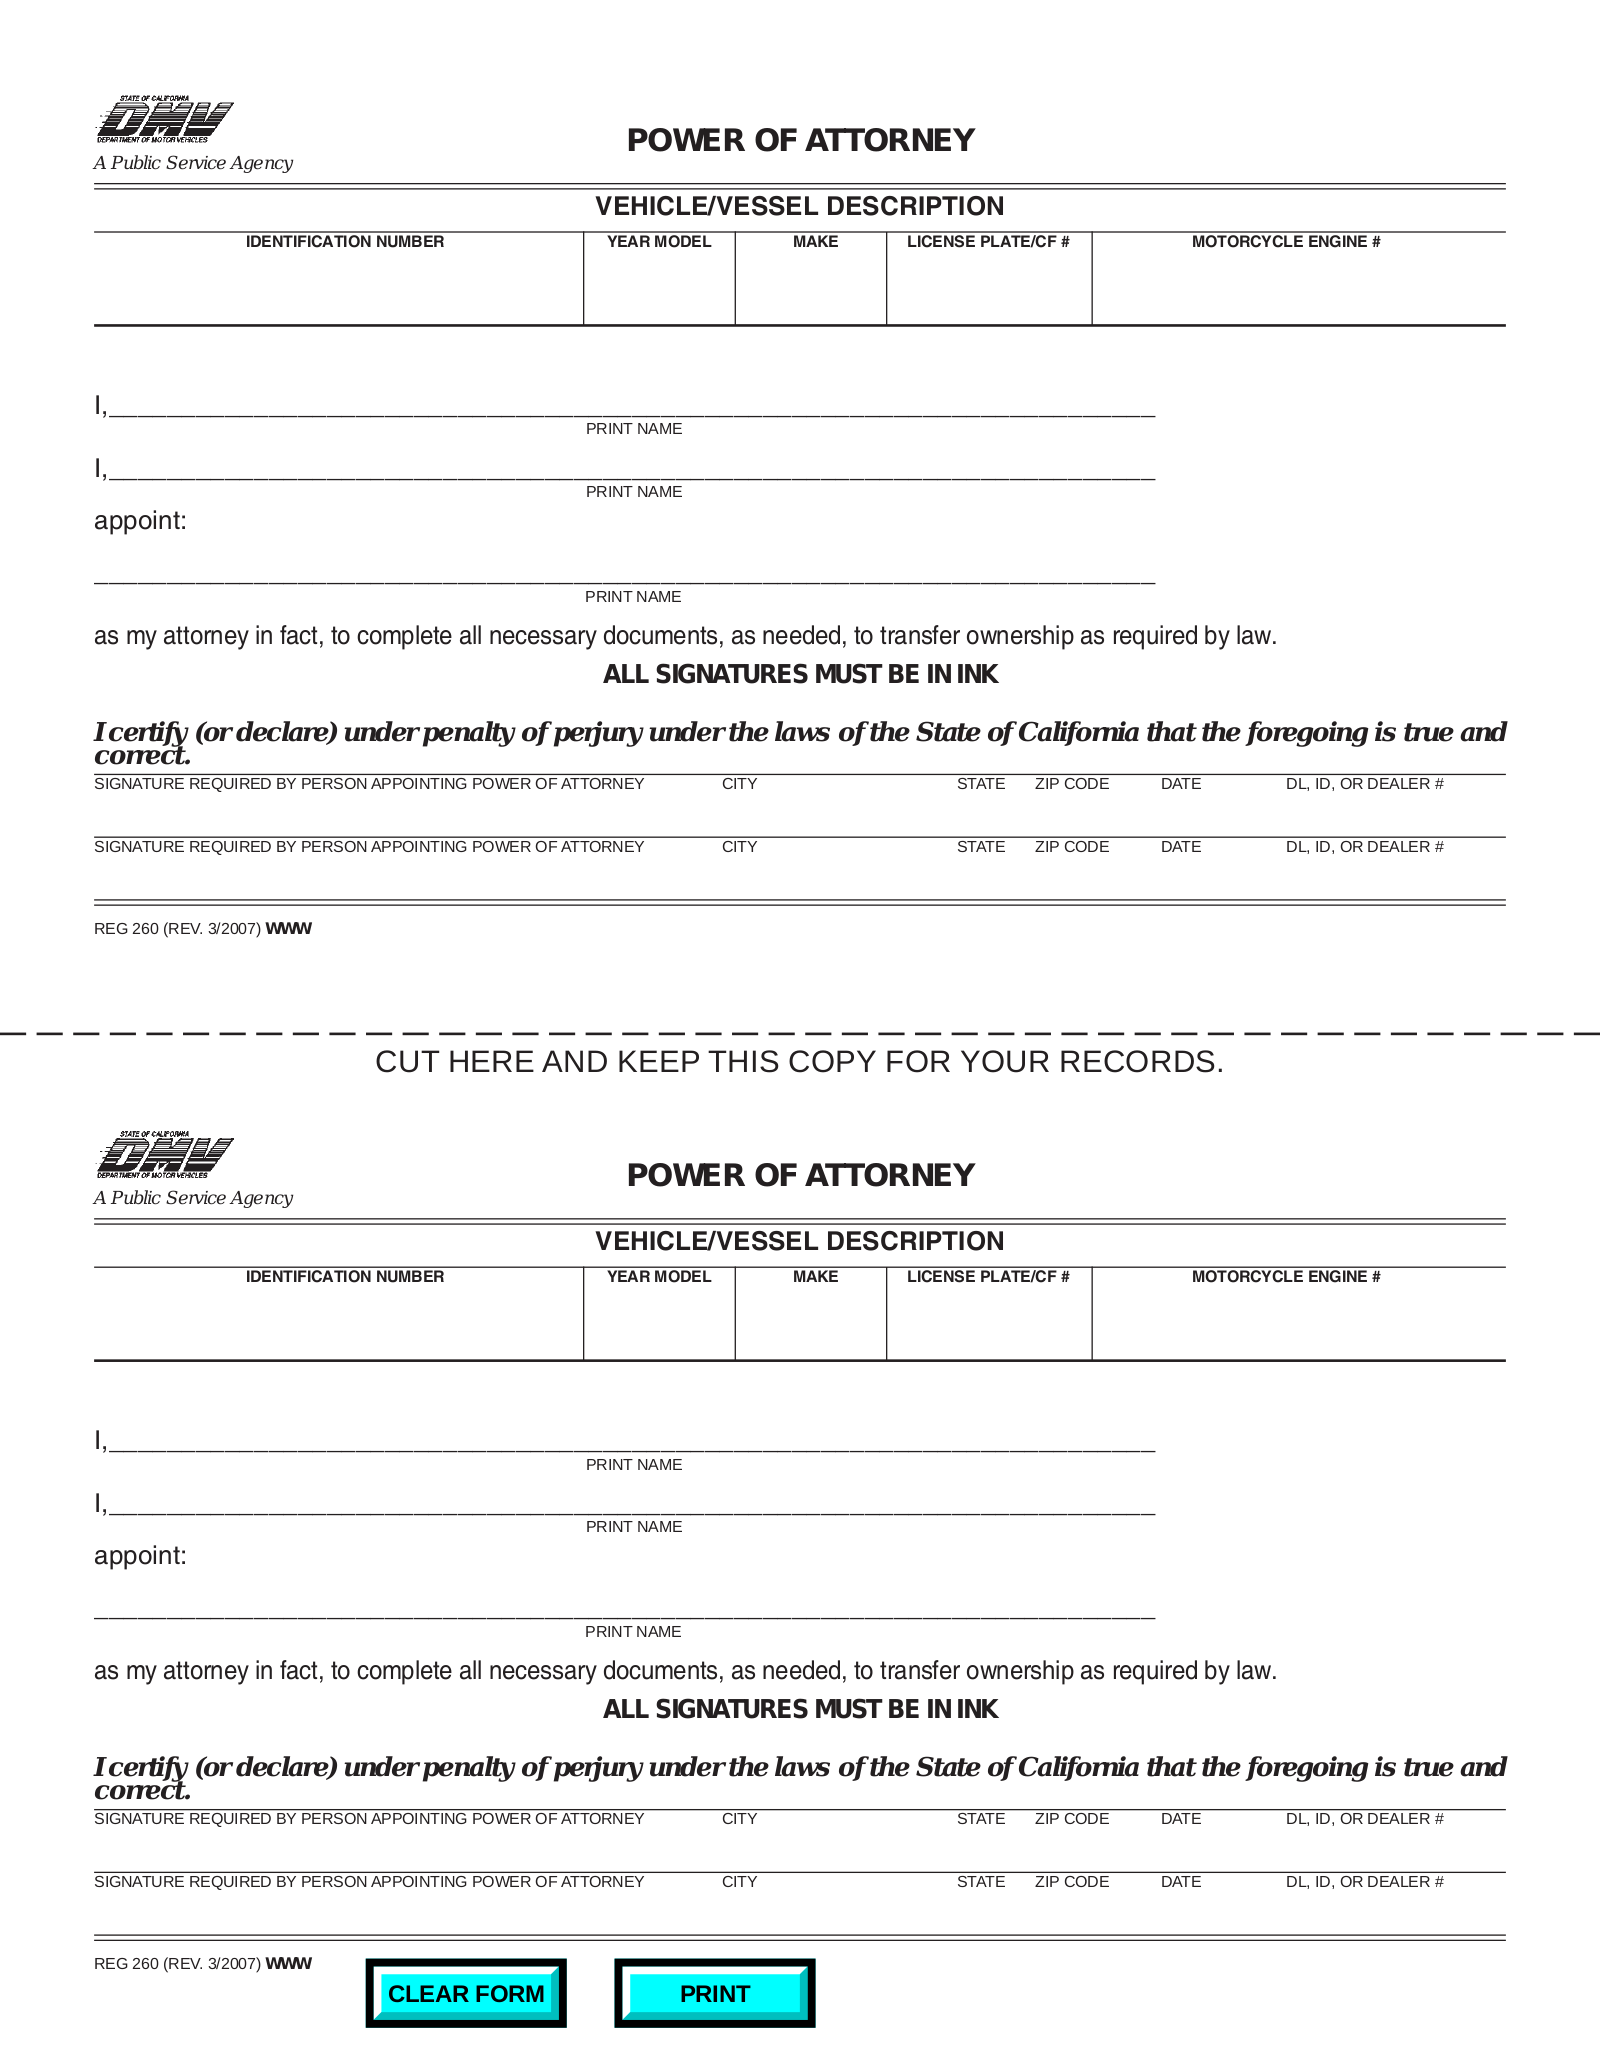 Free California Vehicle Power of Attorney Form - PDF